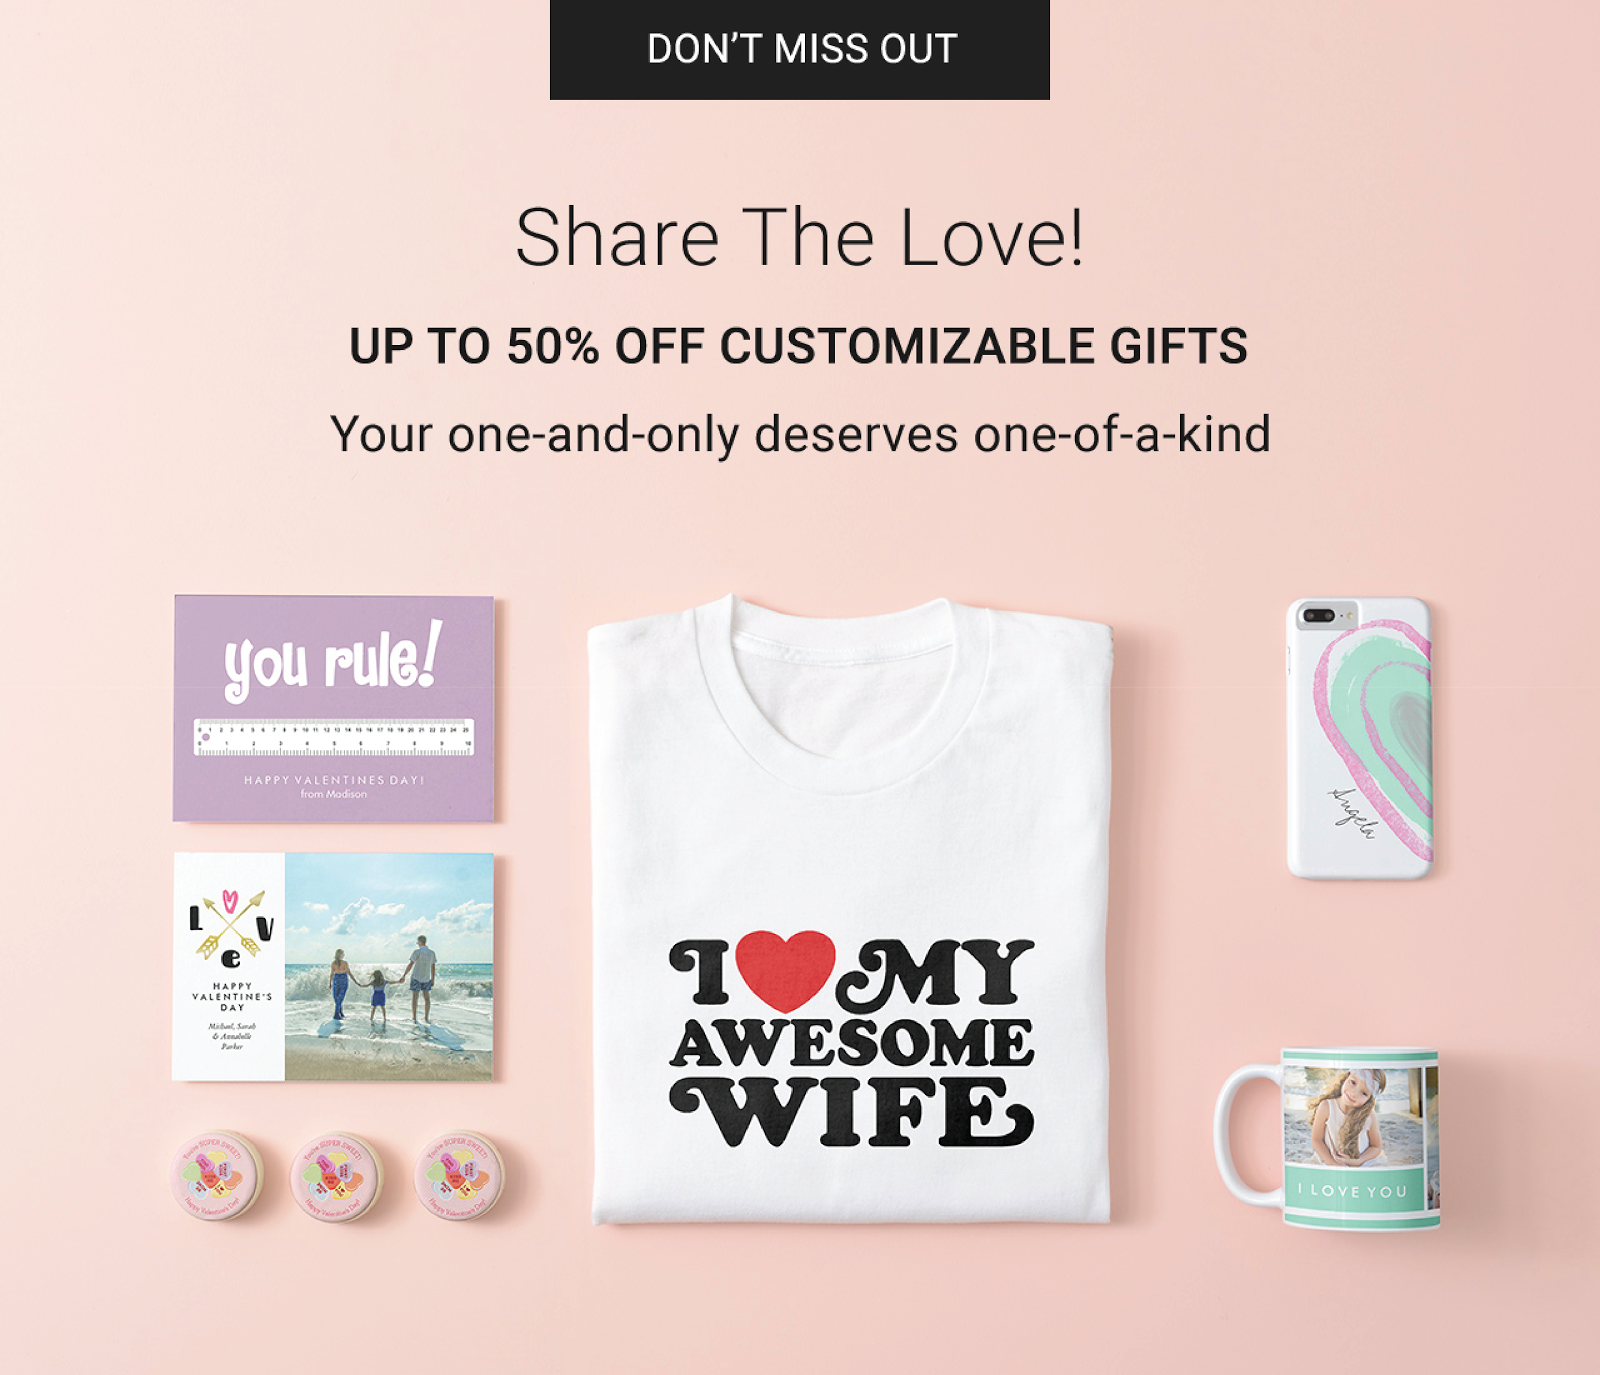 Share The Love - Up To 50% Off Customizable Gifts